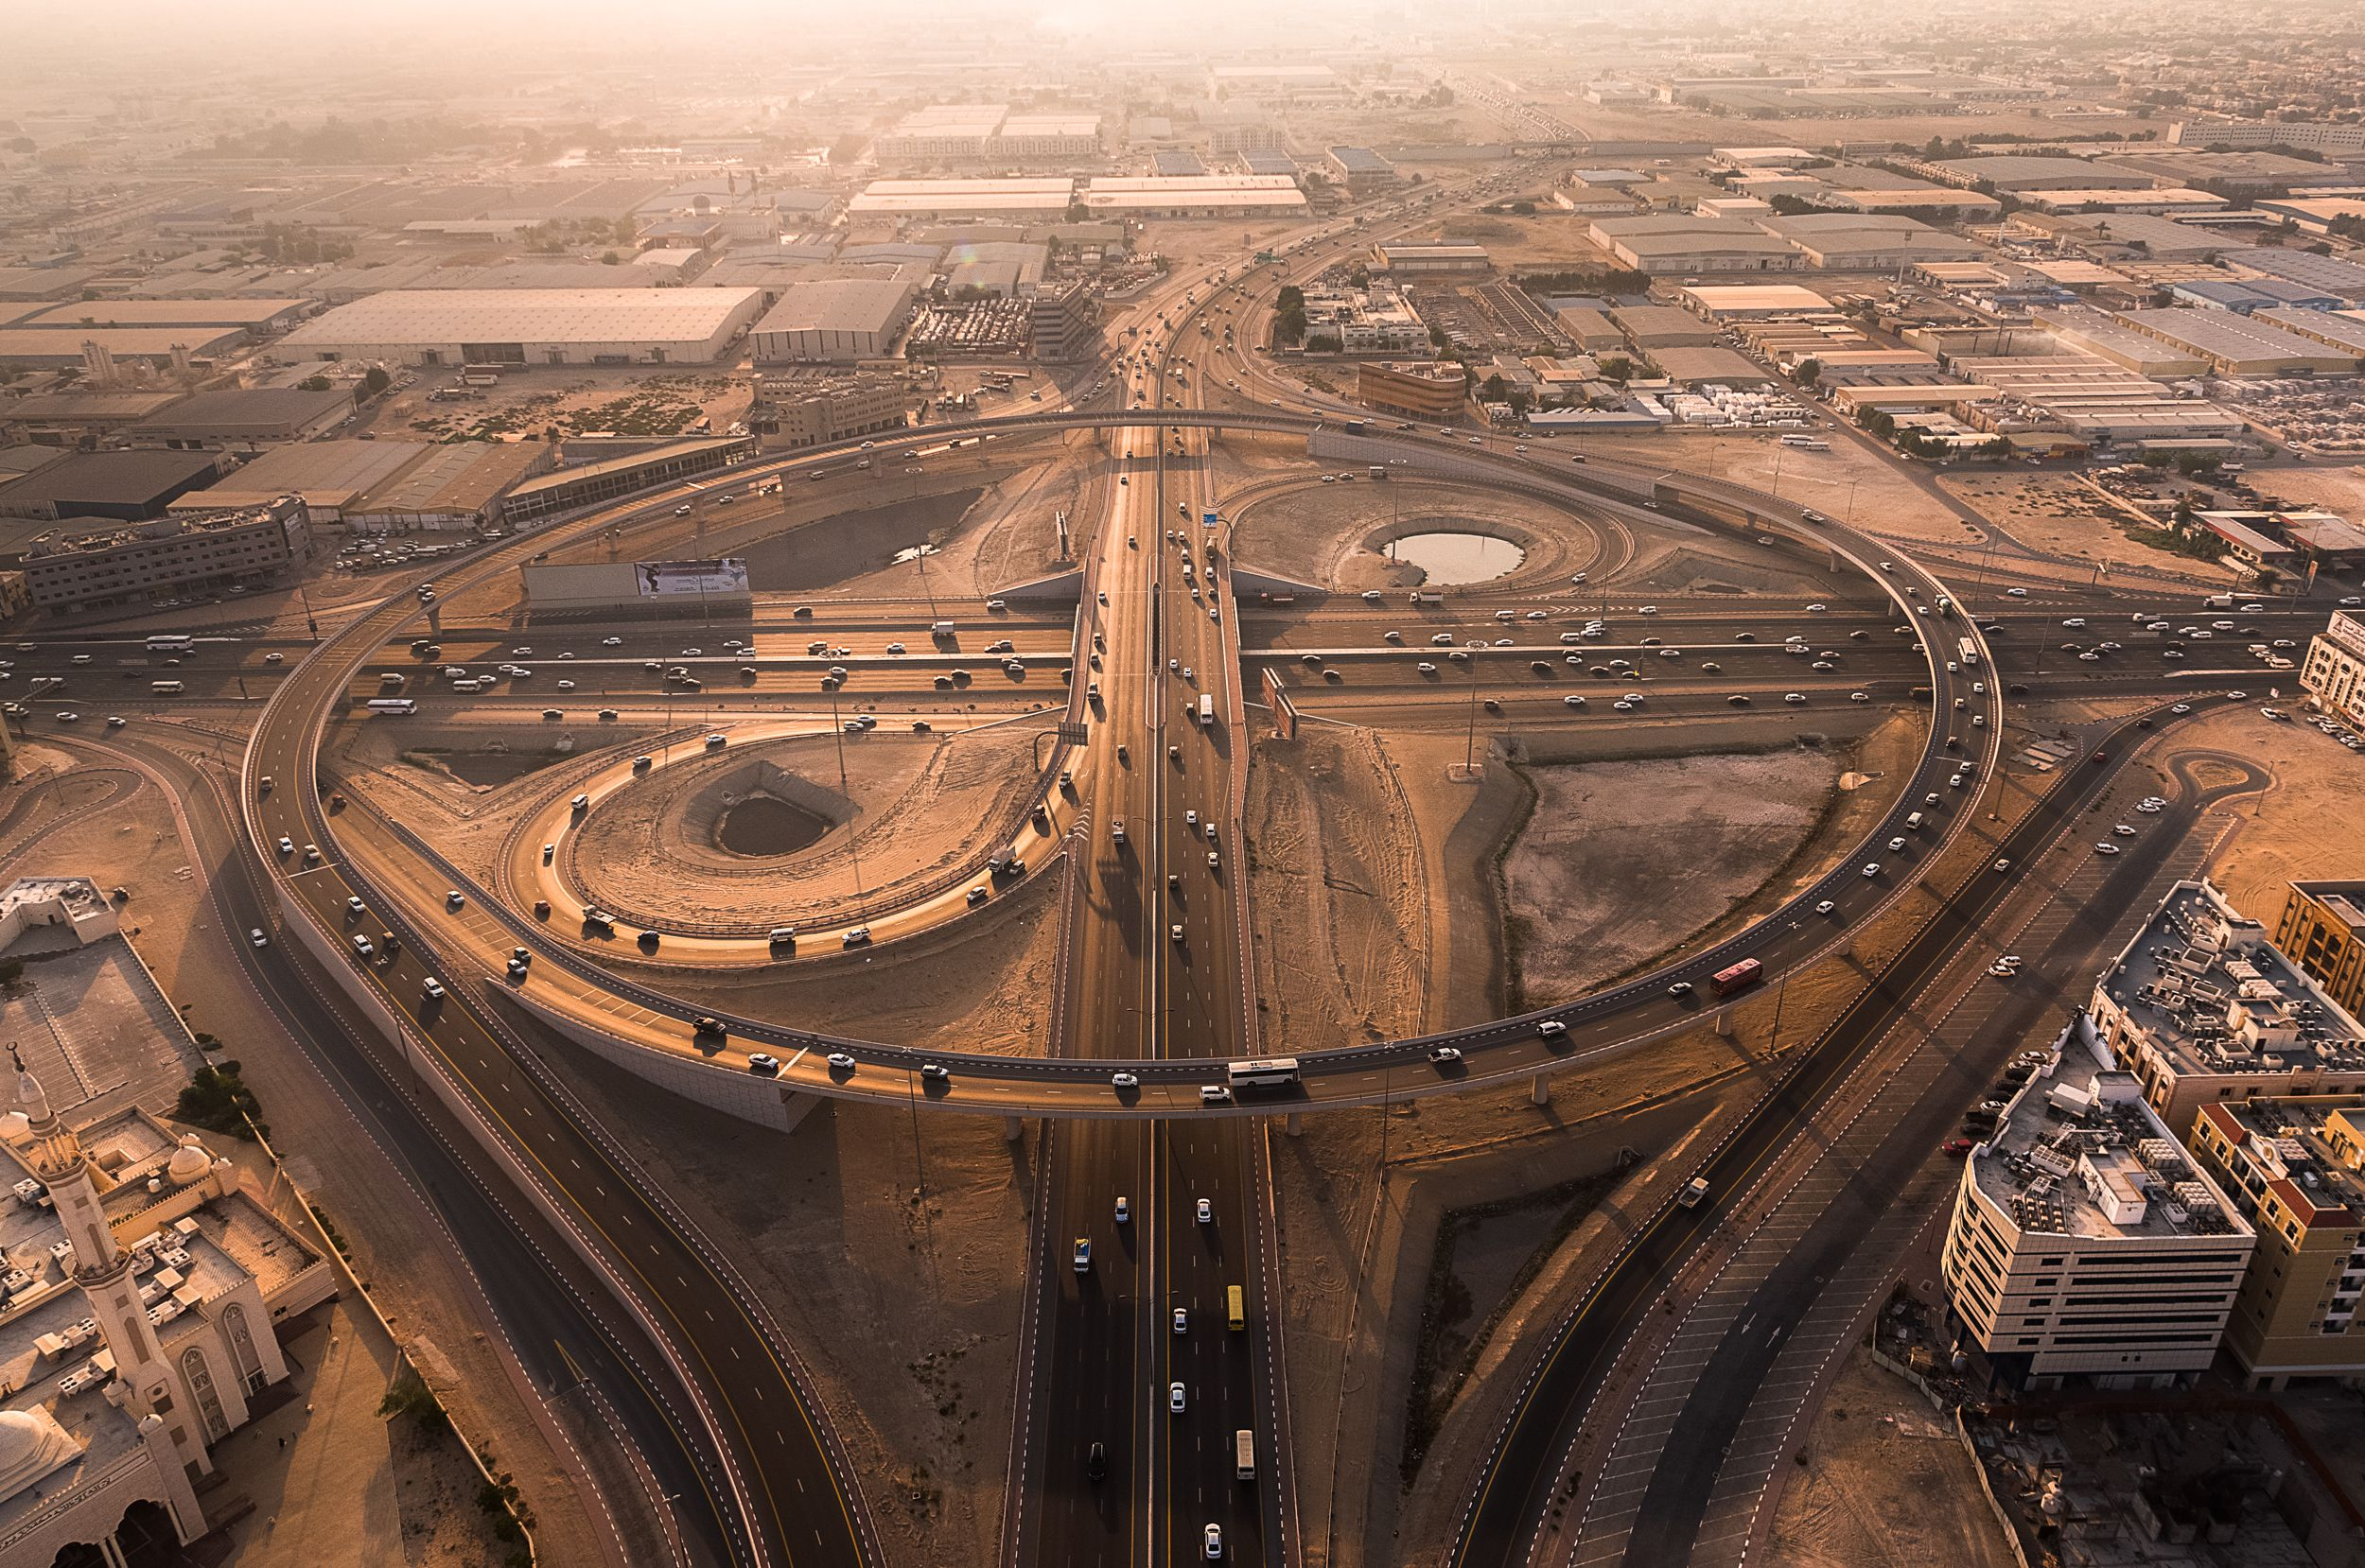 Sharjah Interchange at Sunset